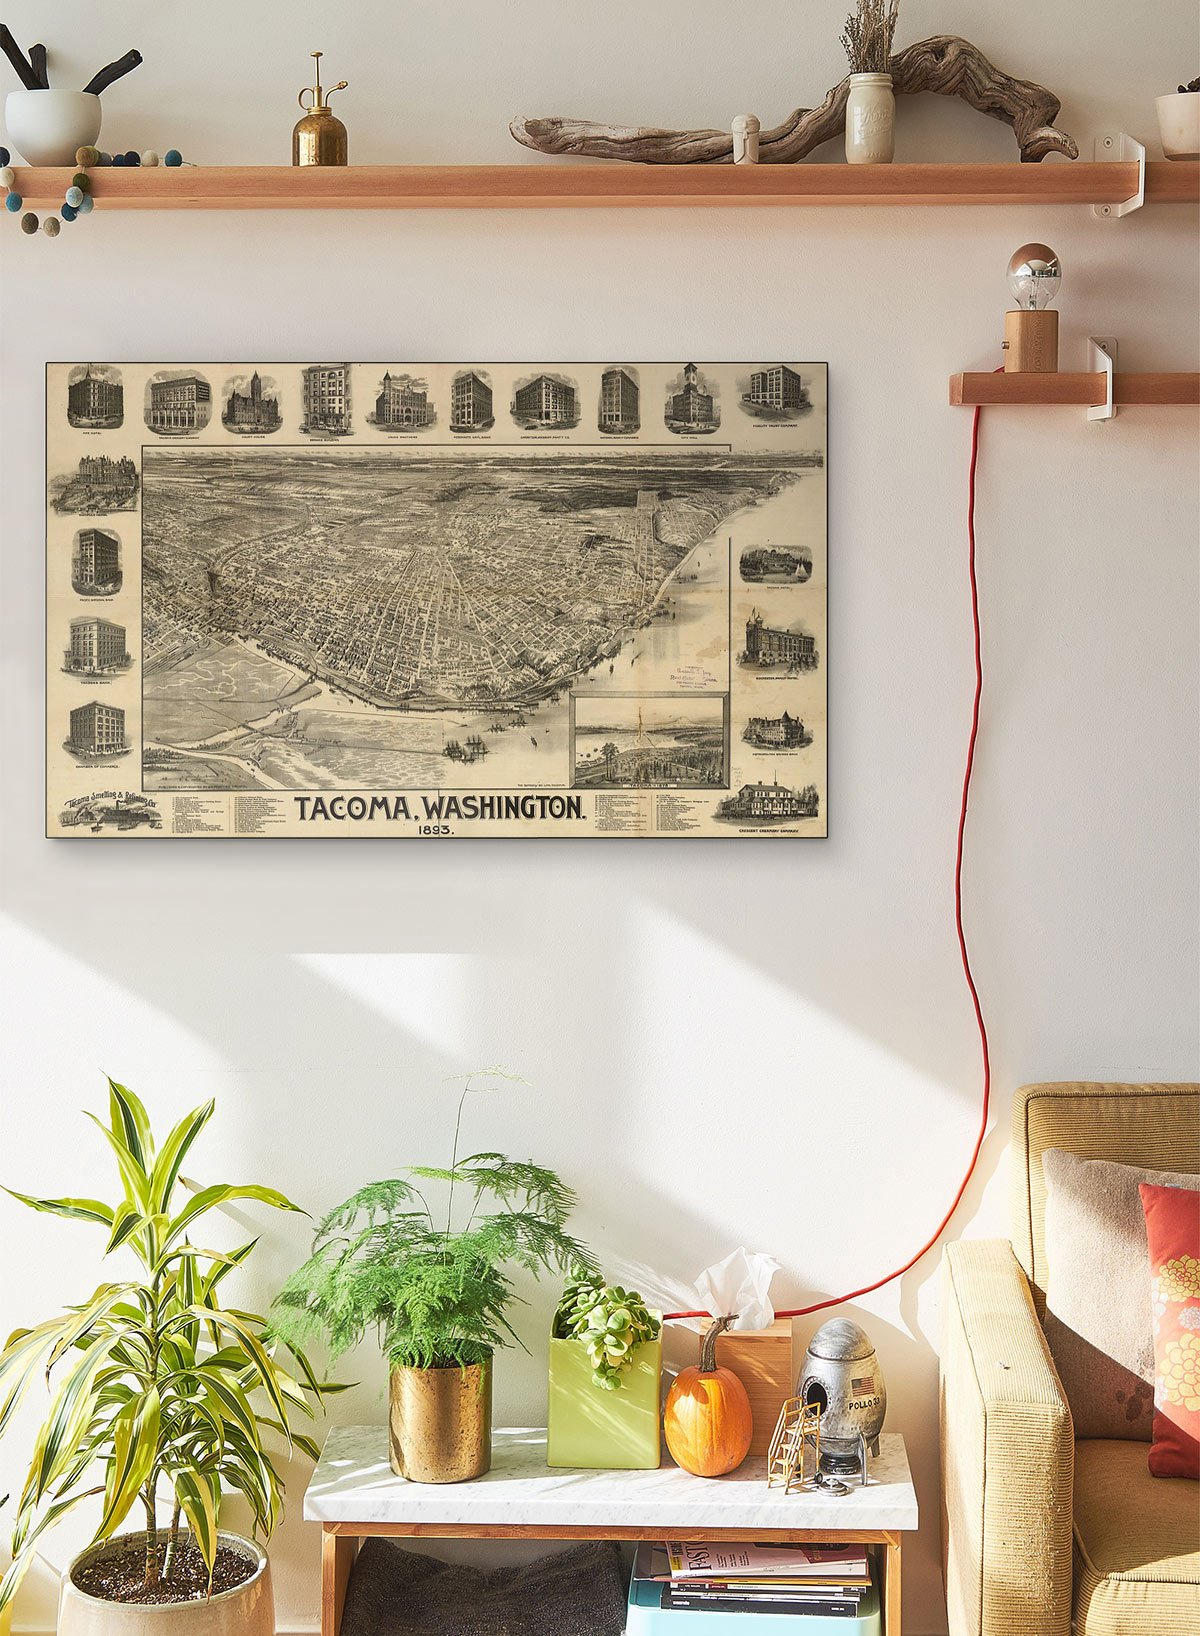 Tacoma Washington LARGE Vintage Map